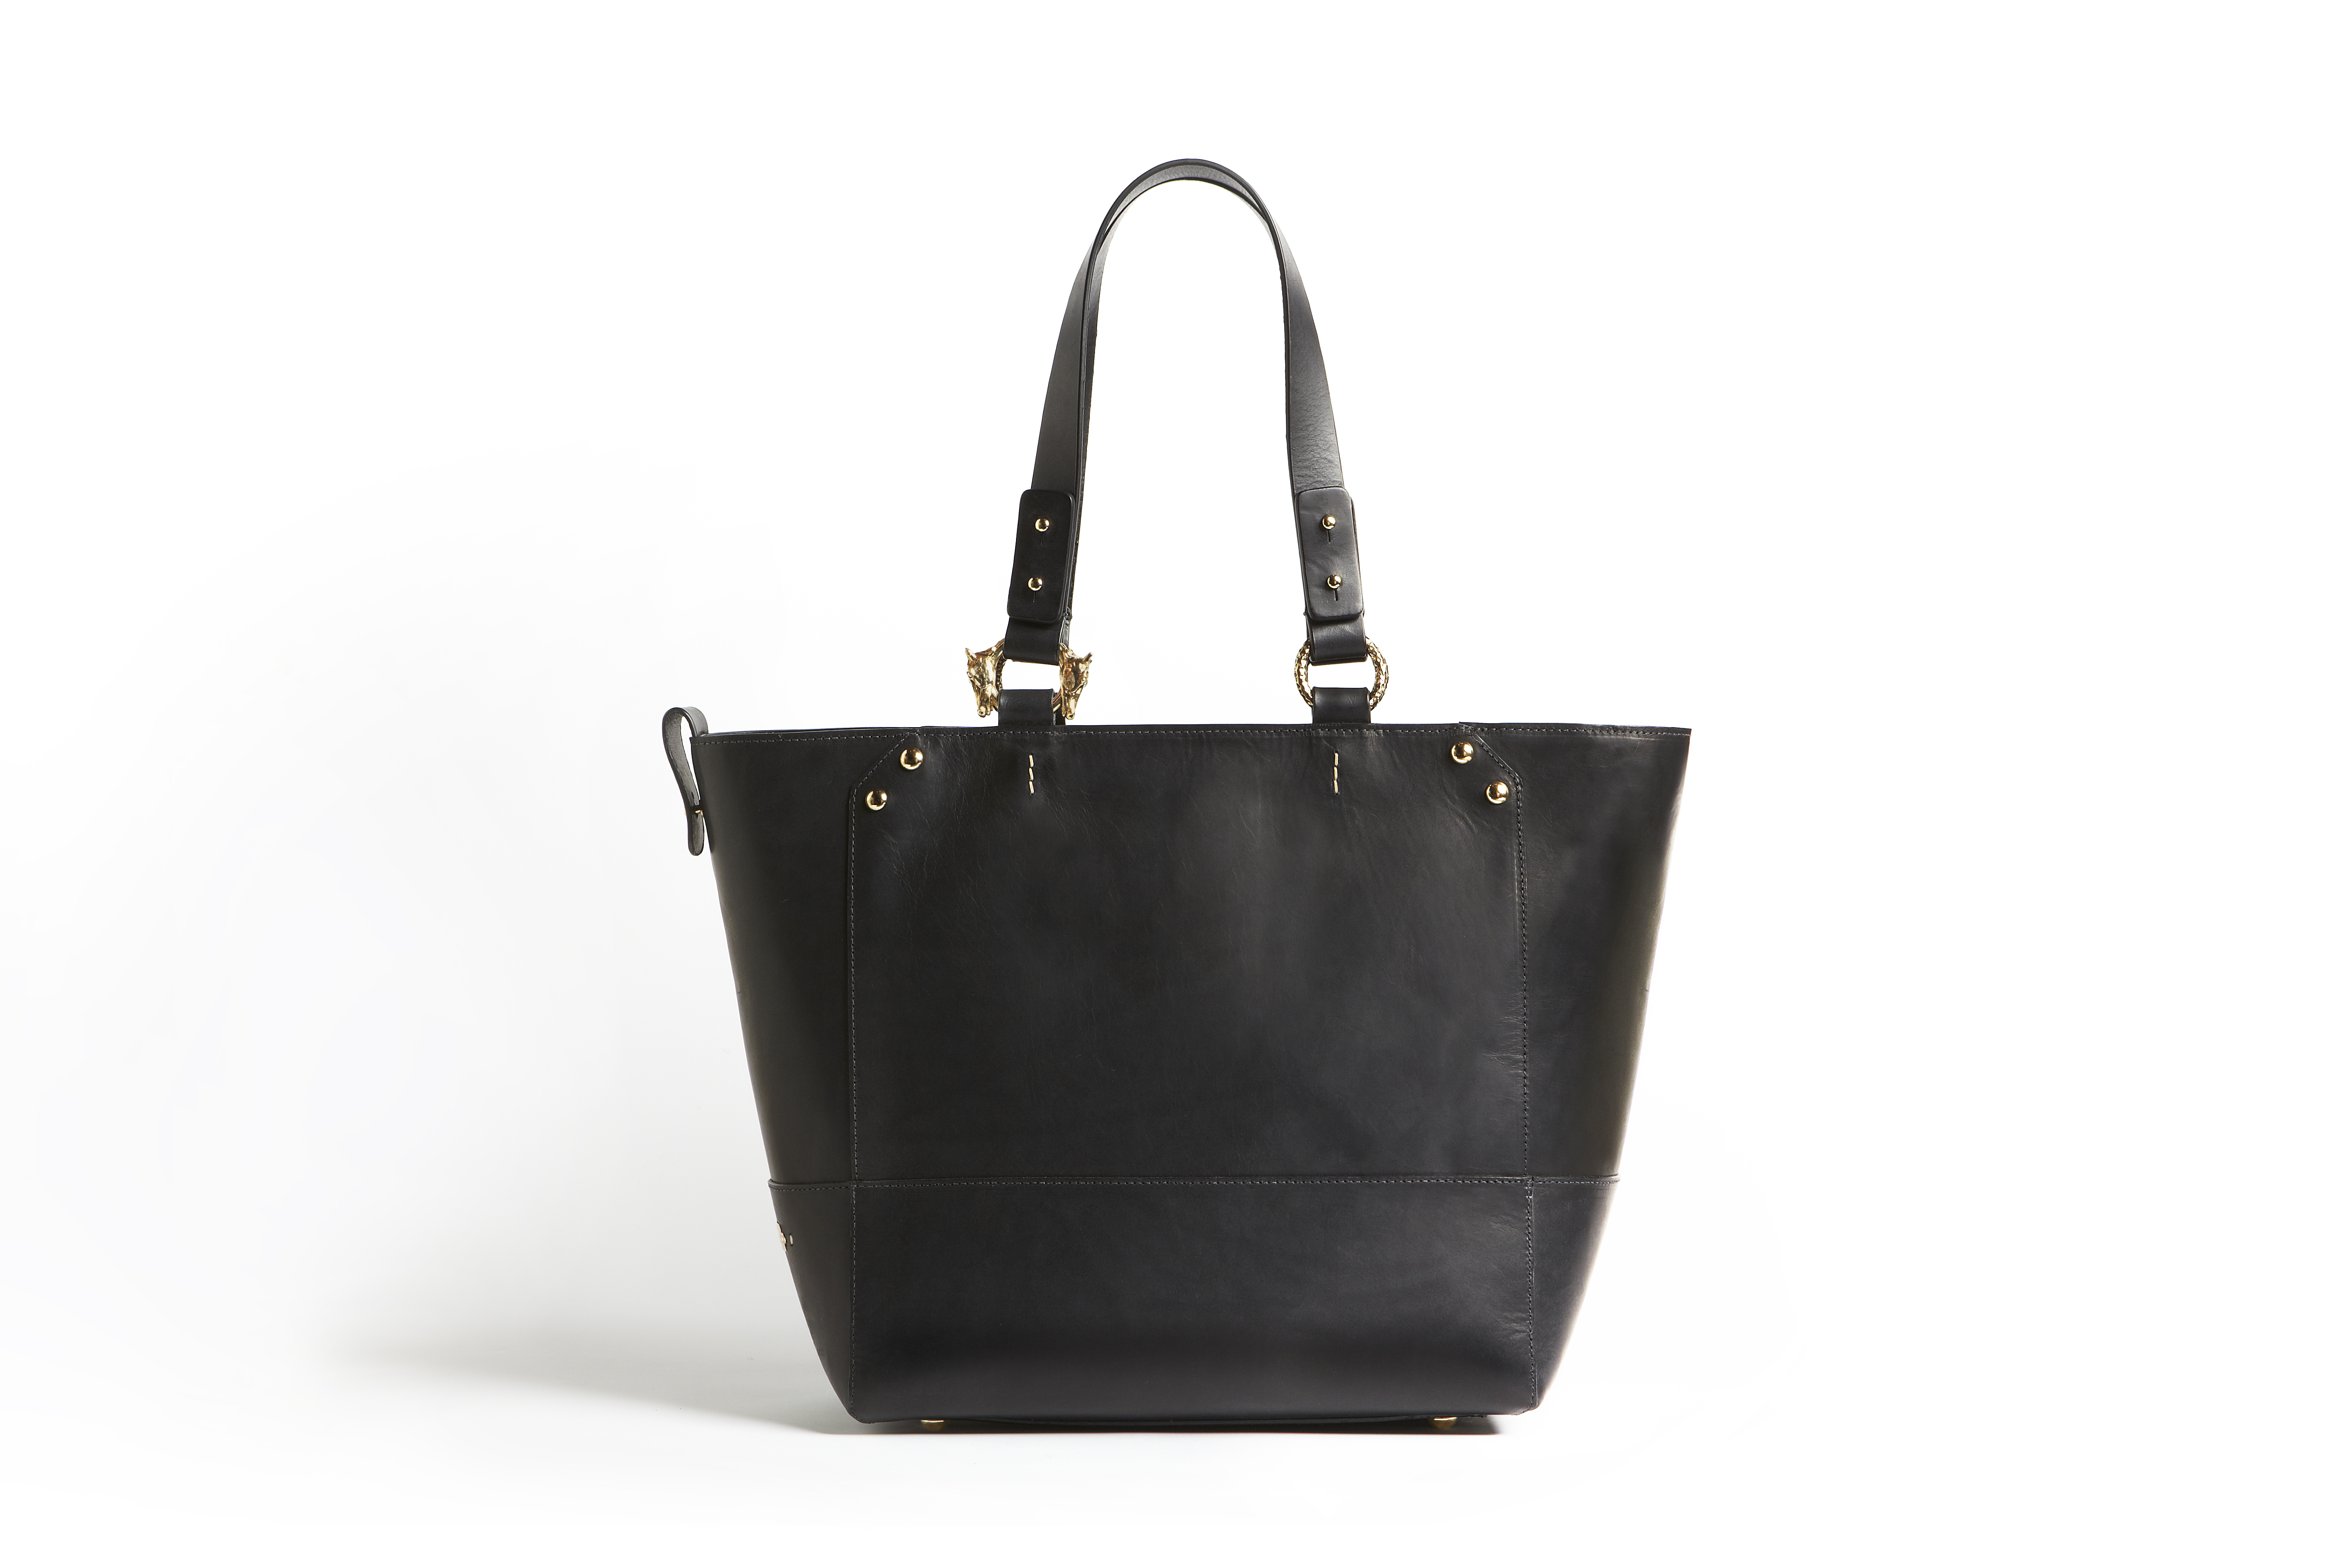 Ariat To Introduce Luxe Limited Edition Line Of Handbags